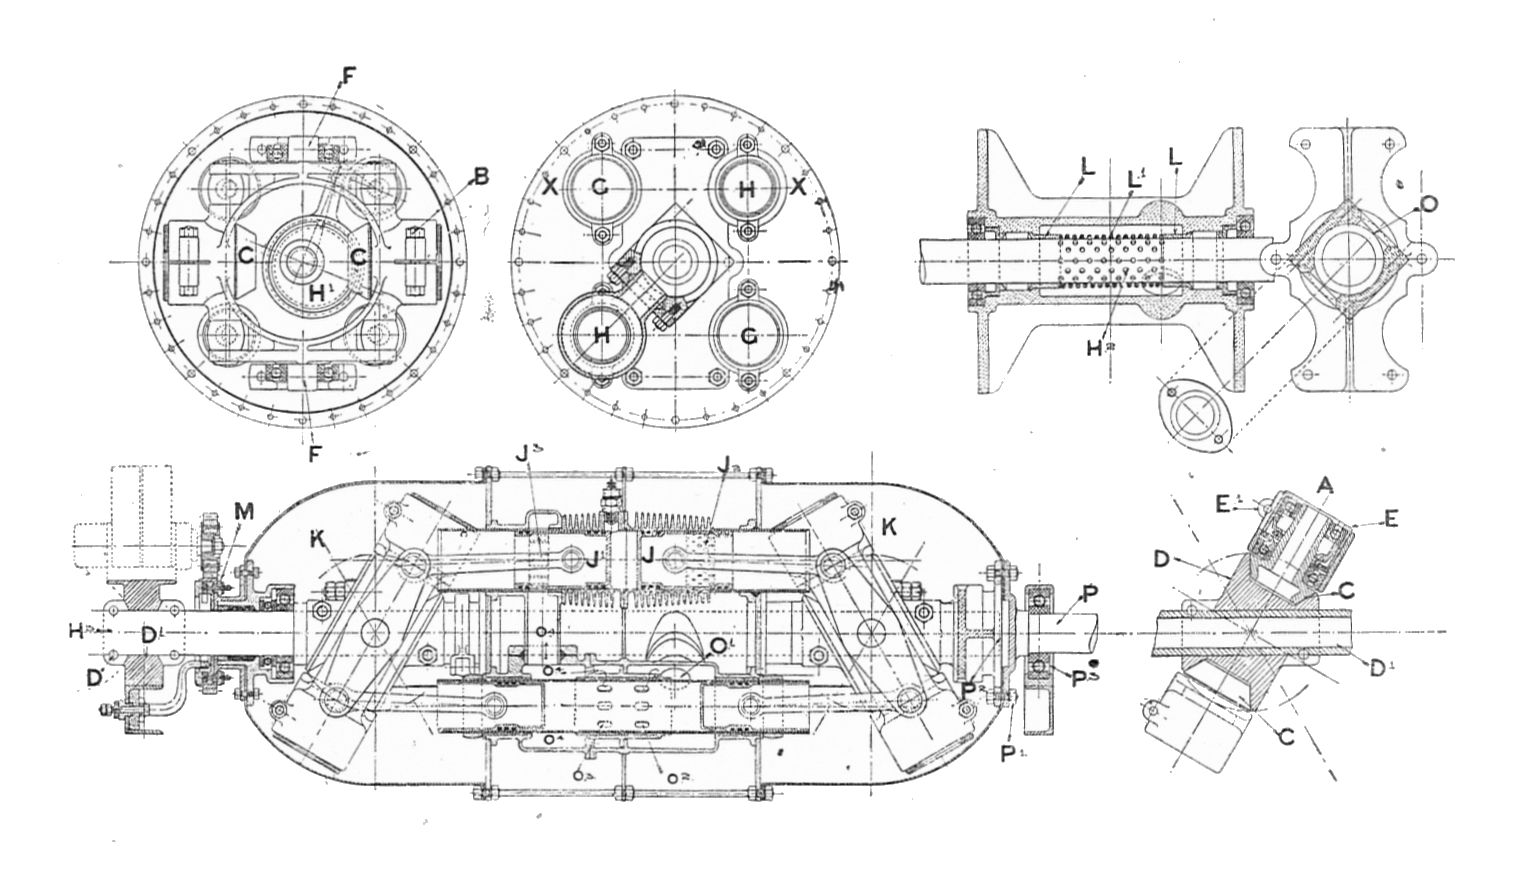 file llough s rotary engine section rankin kennedy modern engines vol v jpg wikimedia